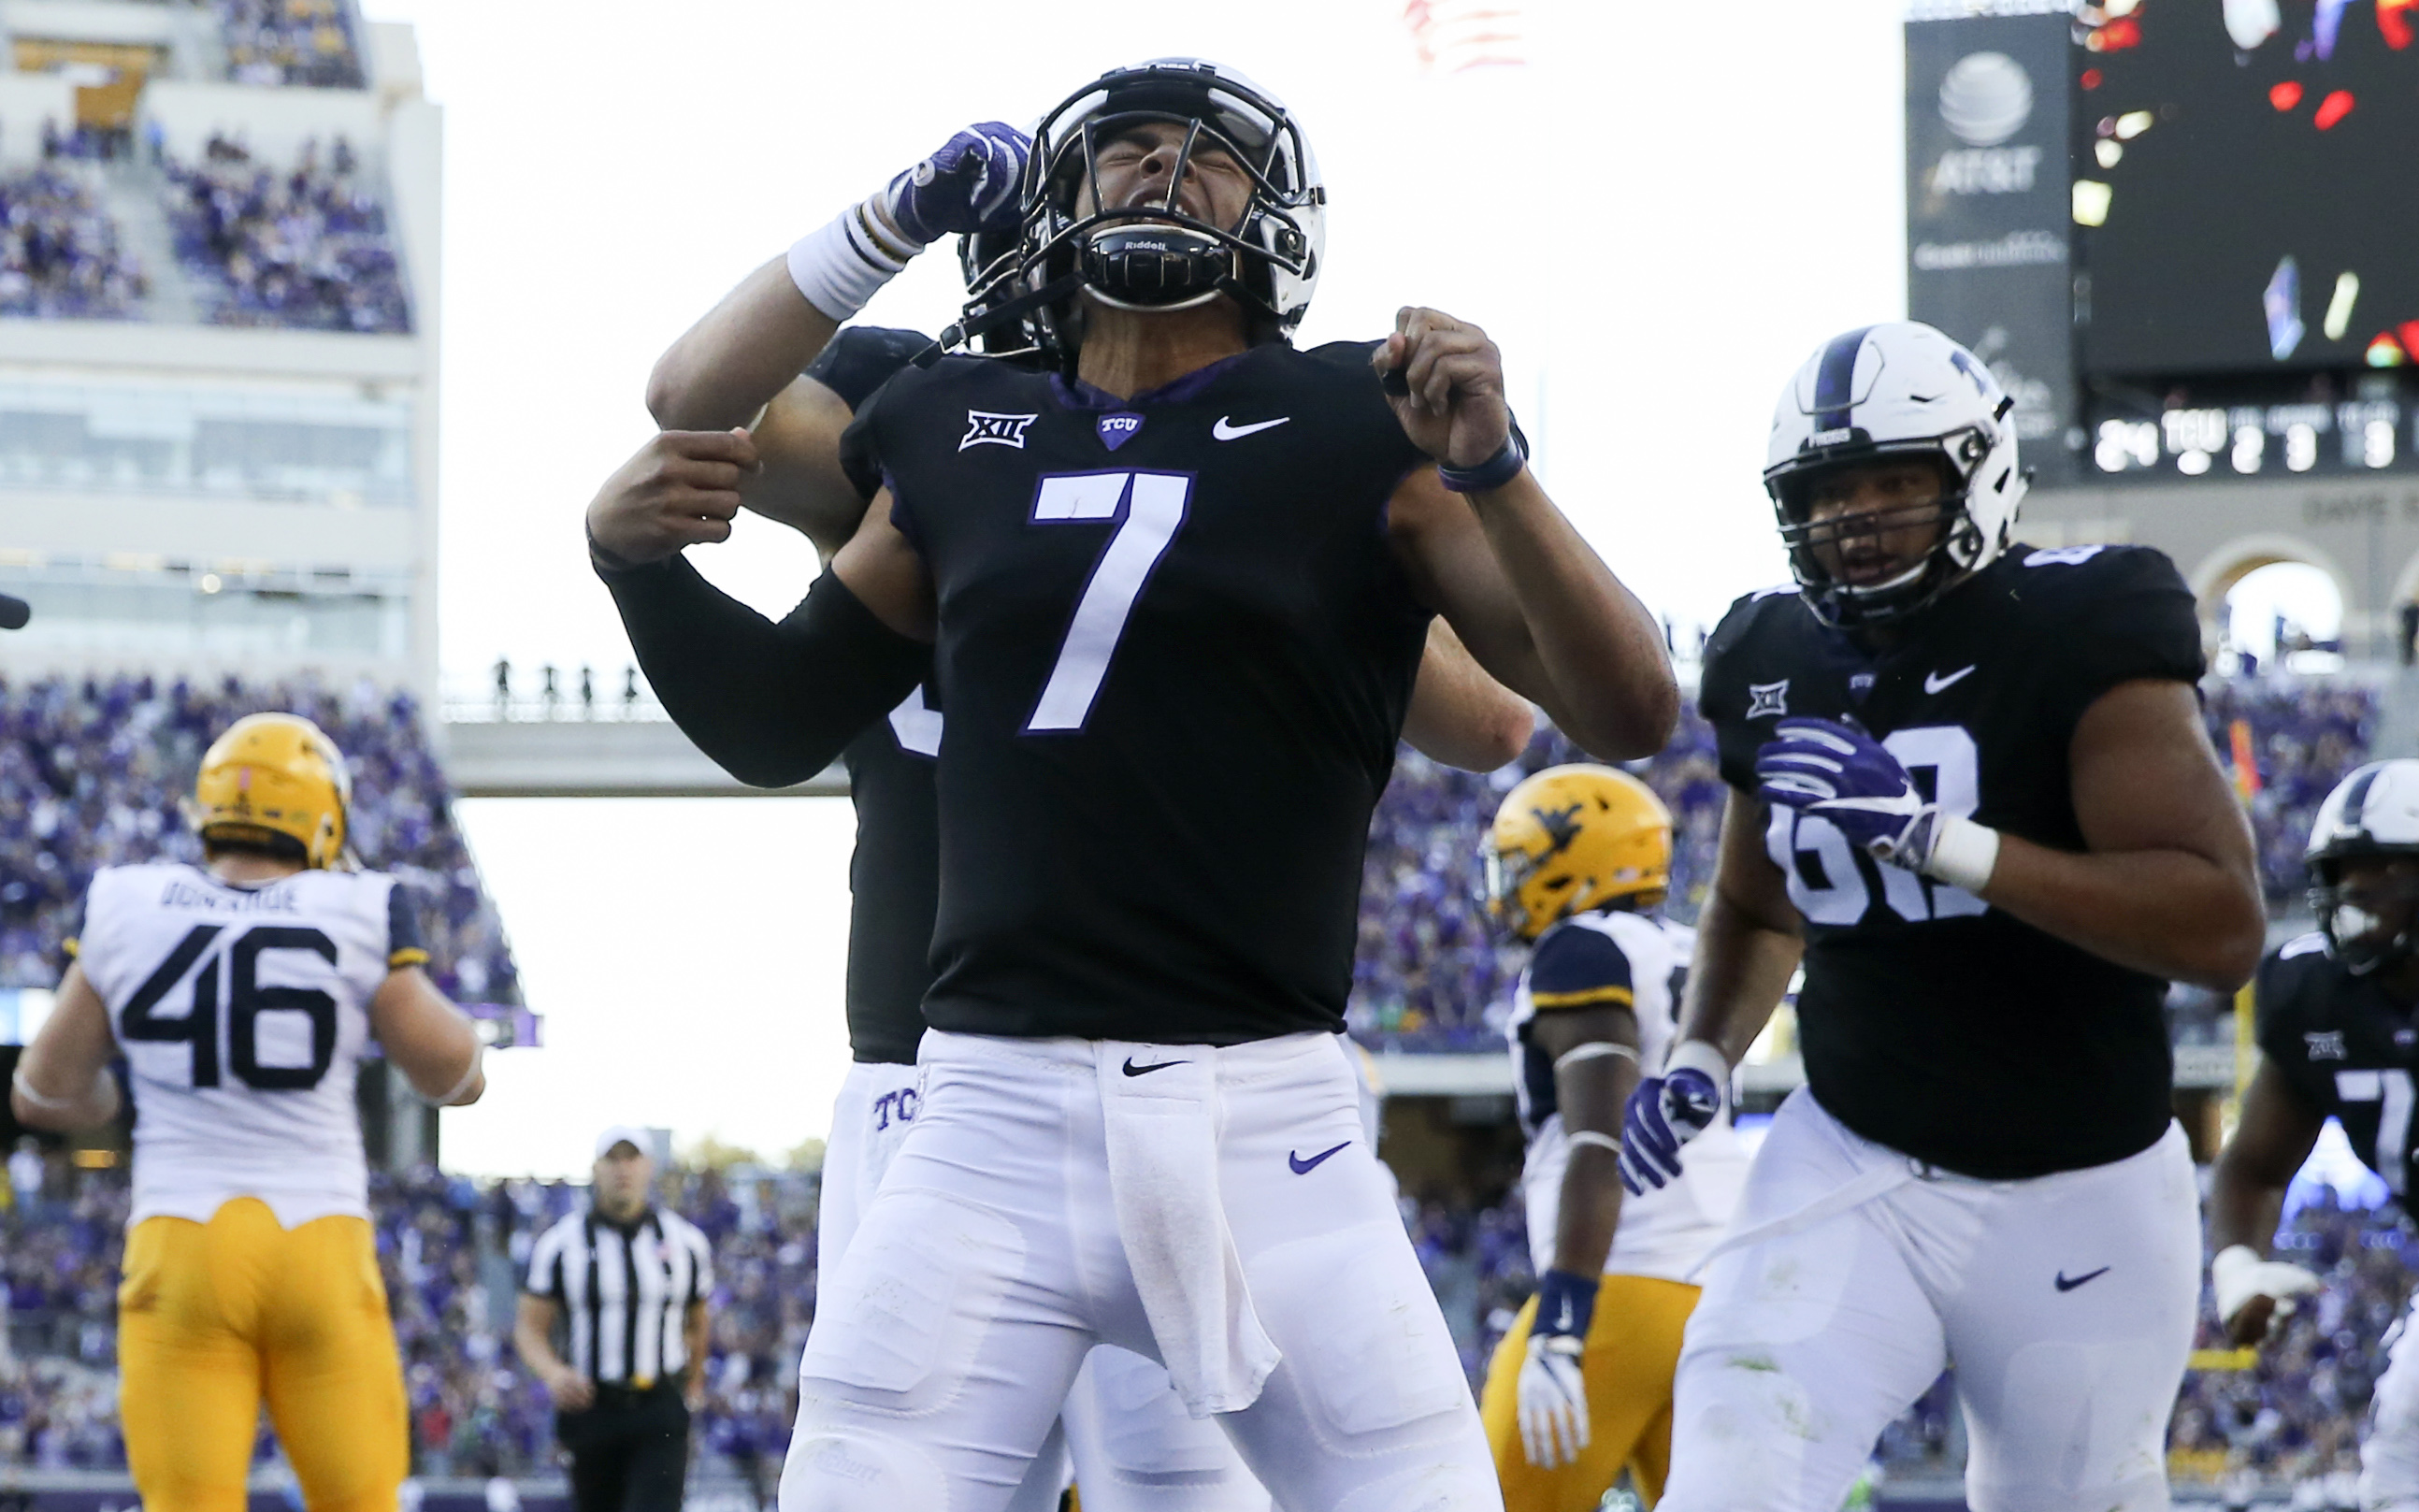 Oct 7, 2017; Fort Worth, TX, USA; TCU Horned Frogs quarterback Kenny Hill (7) celebrates with teammates after scoring the game-winning touchdown during the fourth quarter against the West Virginia Mountaineers at Amon G. Carter Stadium. Mandatory Credit: Kevin Jairaj-USA TODAY Sports